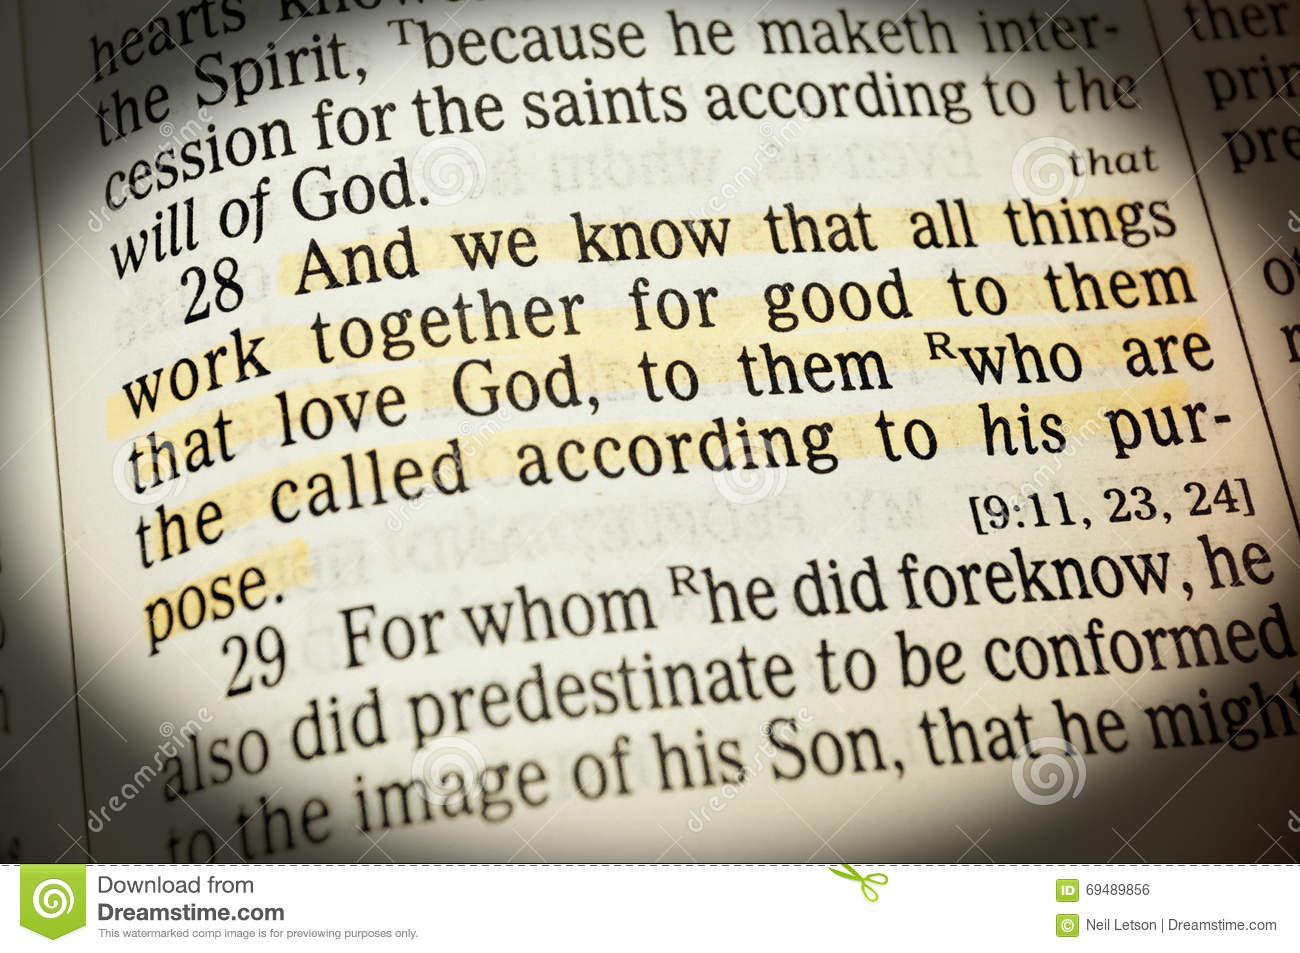 Romans 6:28- And we know all things work together for good to them that love God